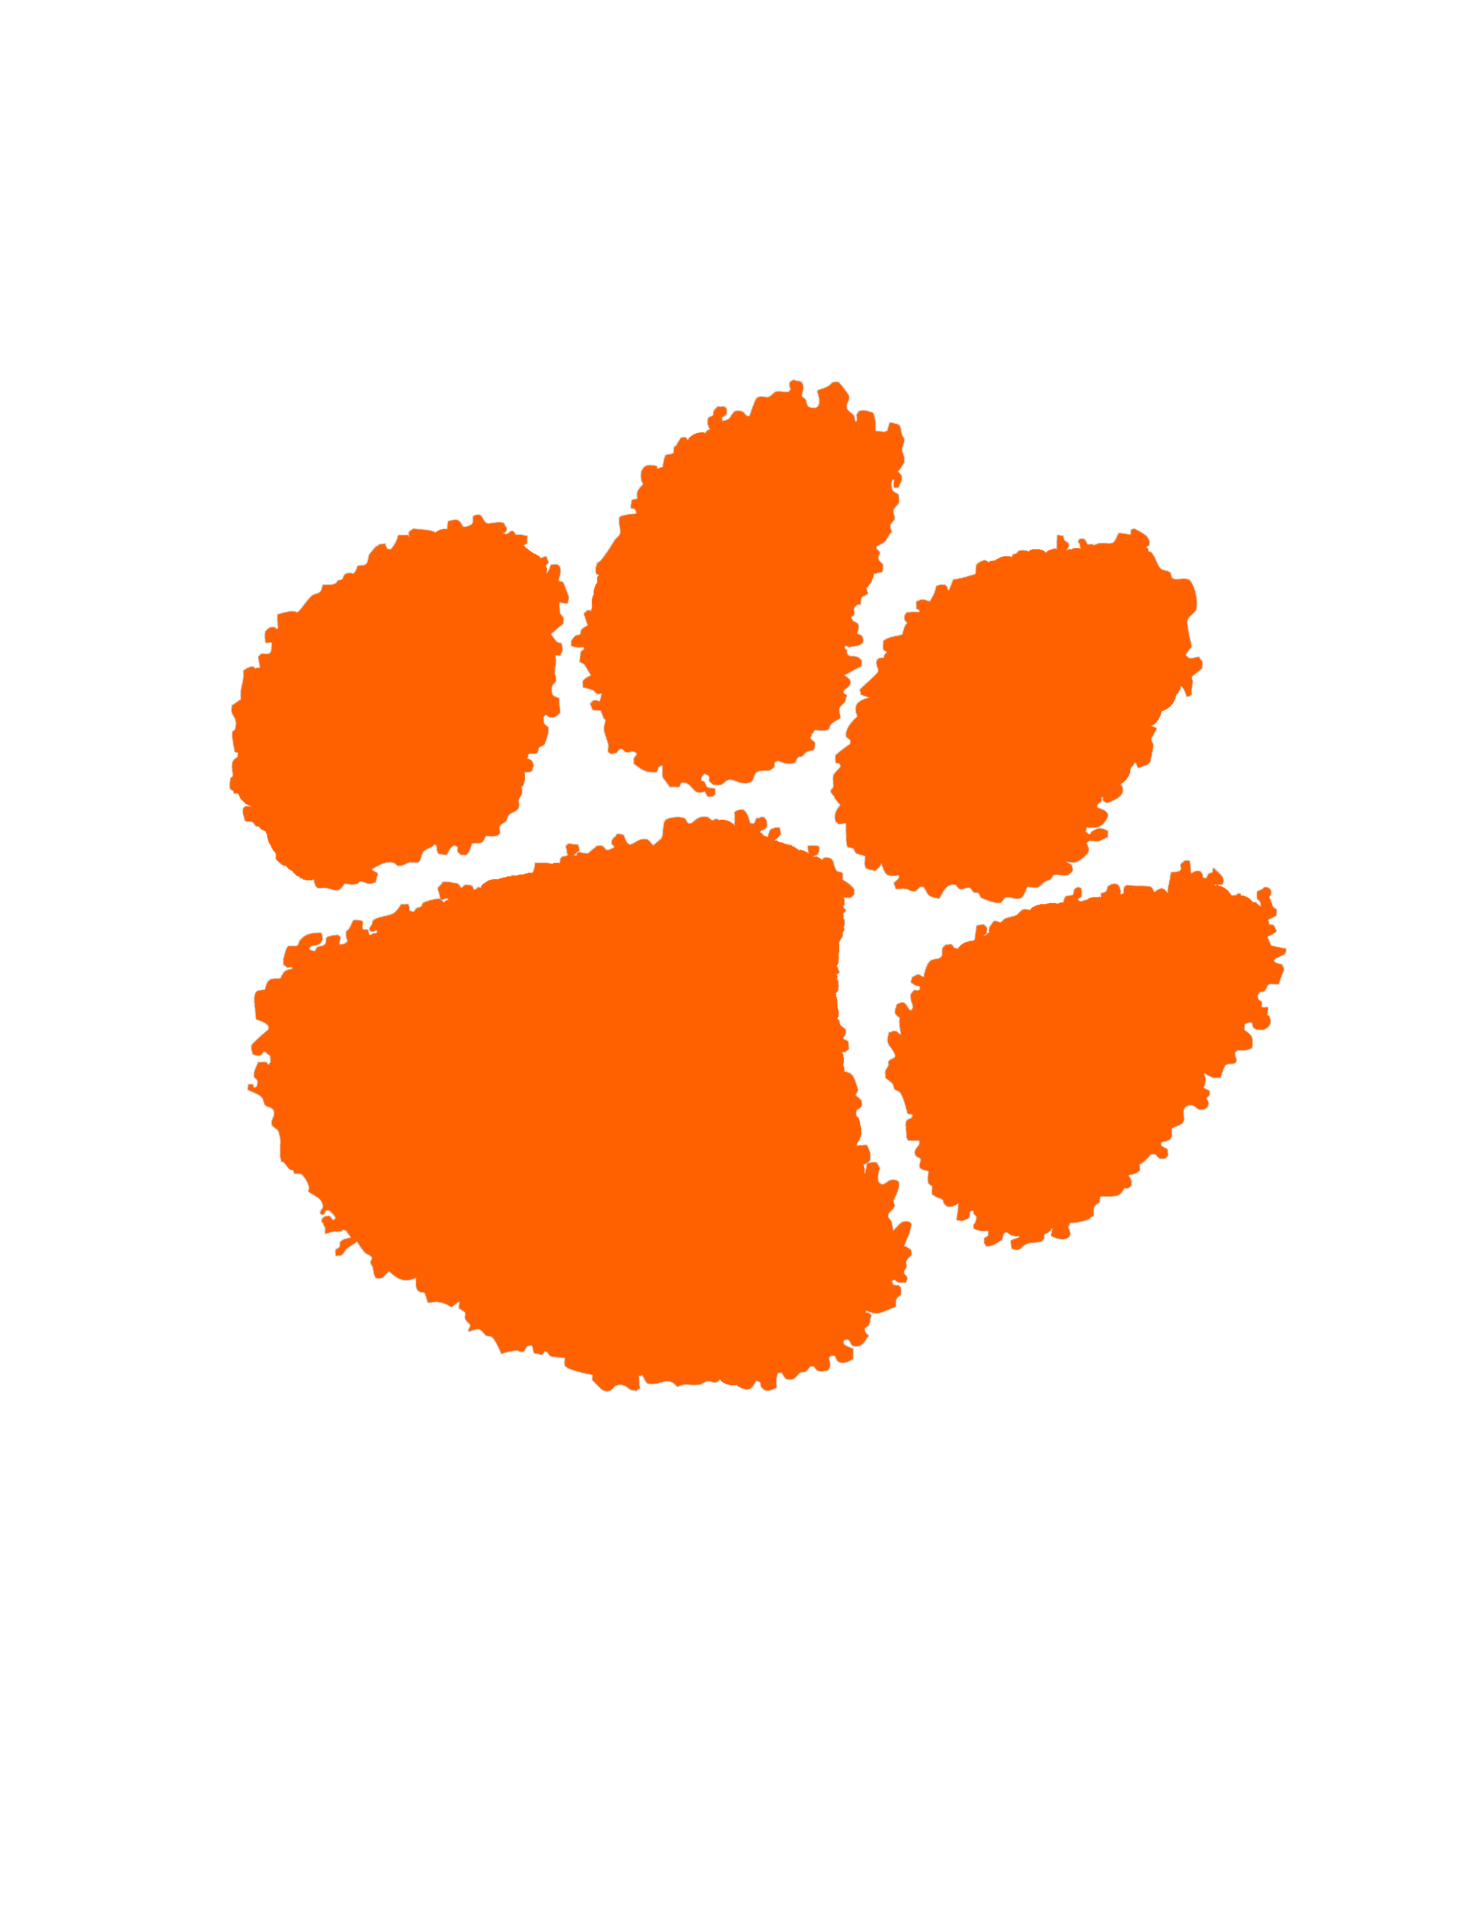 orange cougar paw